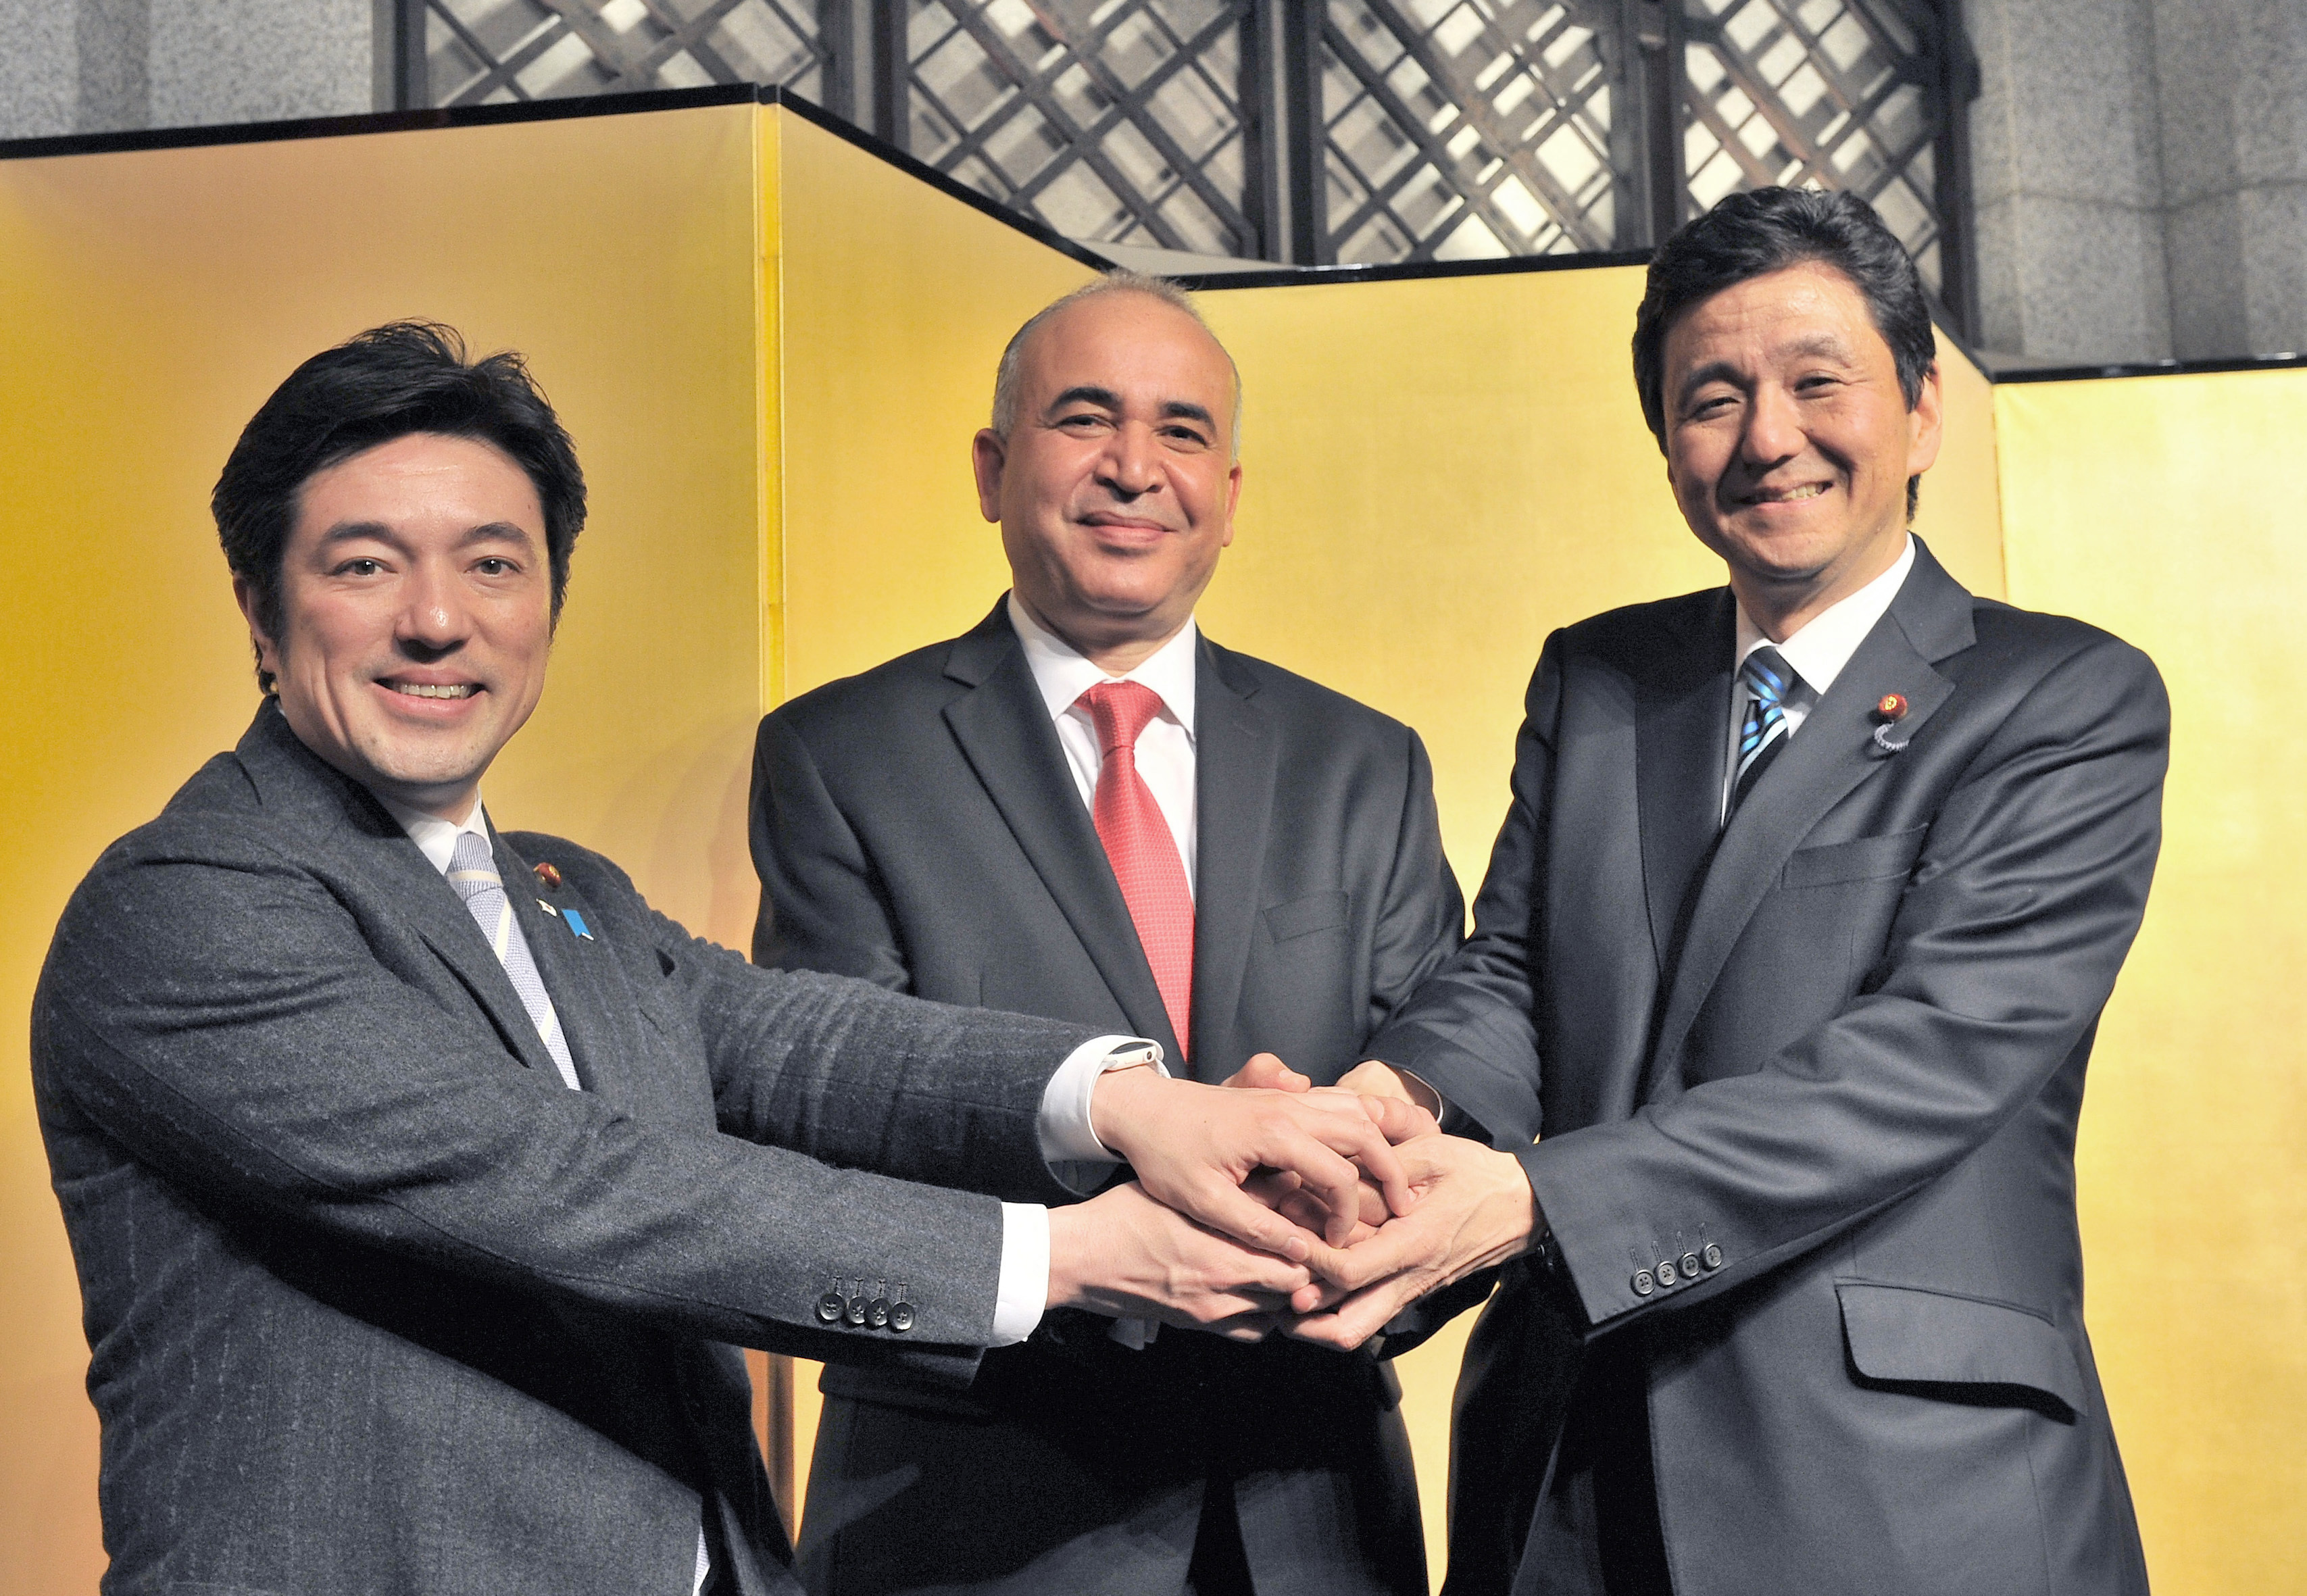 Tunisia's Ambassador Kais Darragi (center) joins hands with Japan Tunisia Parliamentary Committee Secretary-General Yasuhide Yamanaka  and Chairman of the committee and State Minister for Foreign Affairs Nobuo Kishi at a reception to celebrate the country's 61st independence anniversary at the Hotel Okura, Tokyo, on      March 24. yoshiaki miura